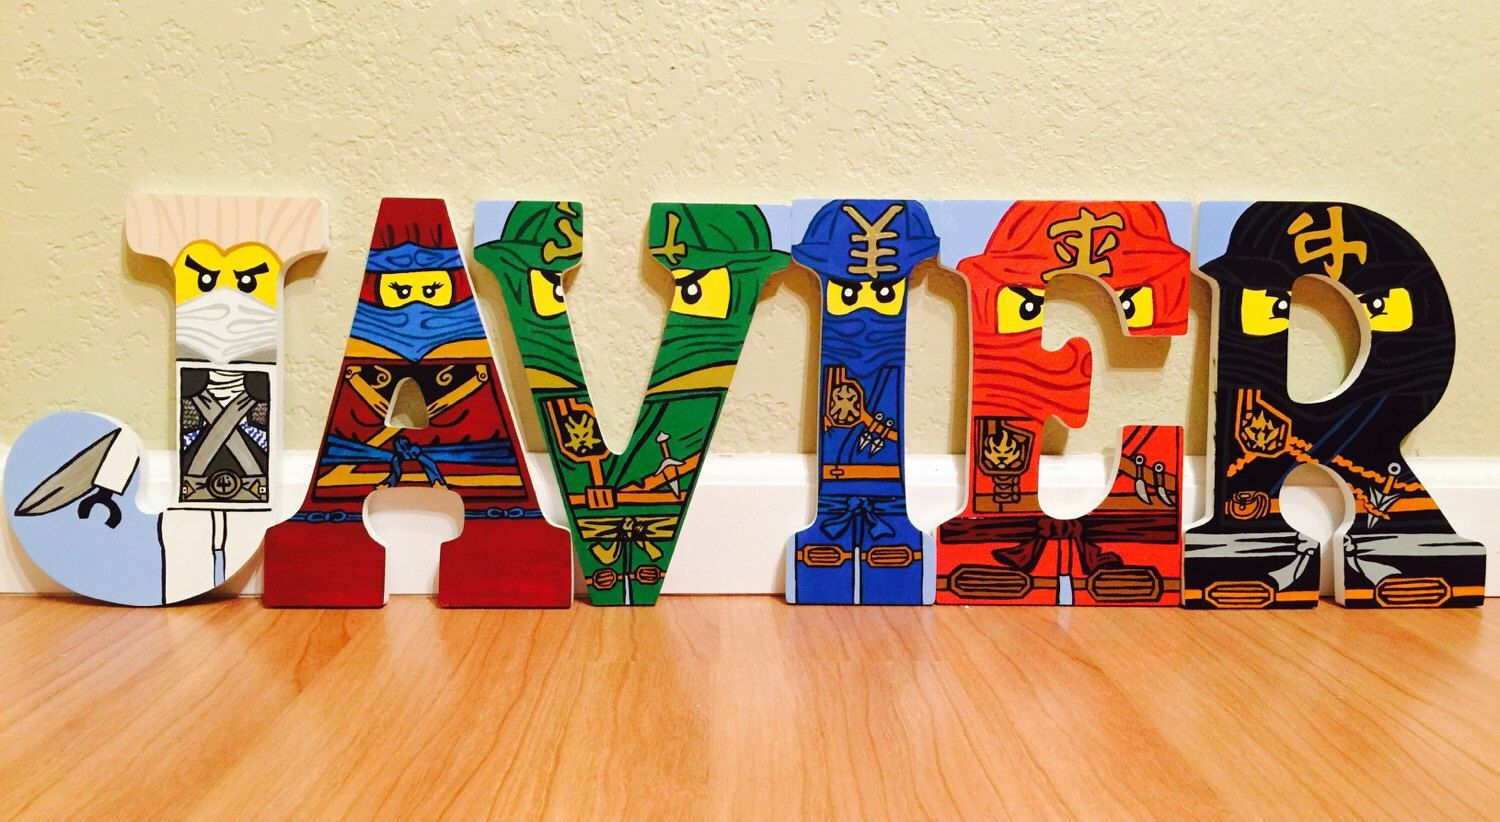 Lego Ninjago letter art. Hand painted wood letters. Kids